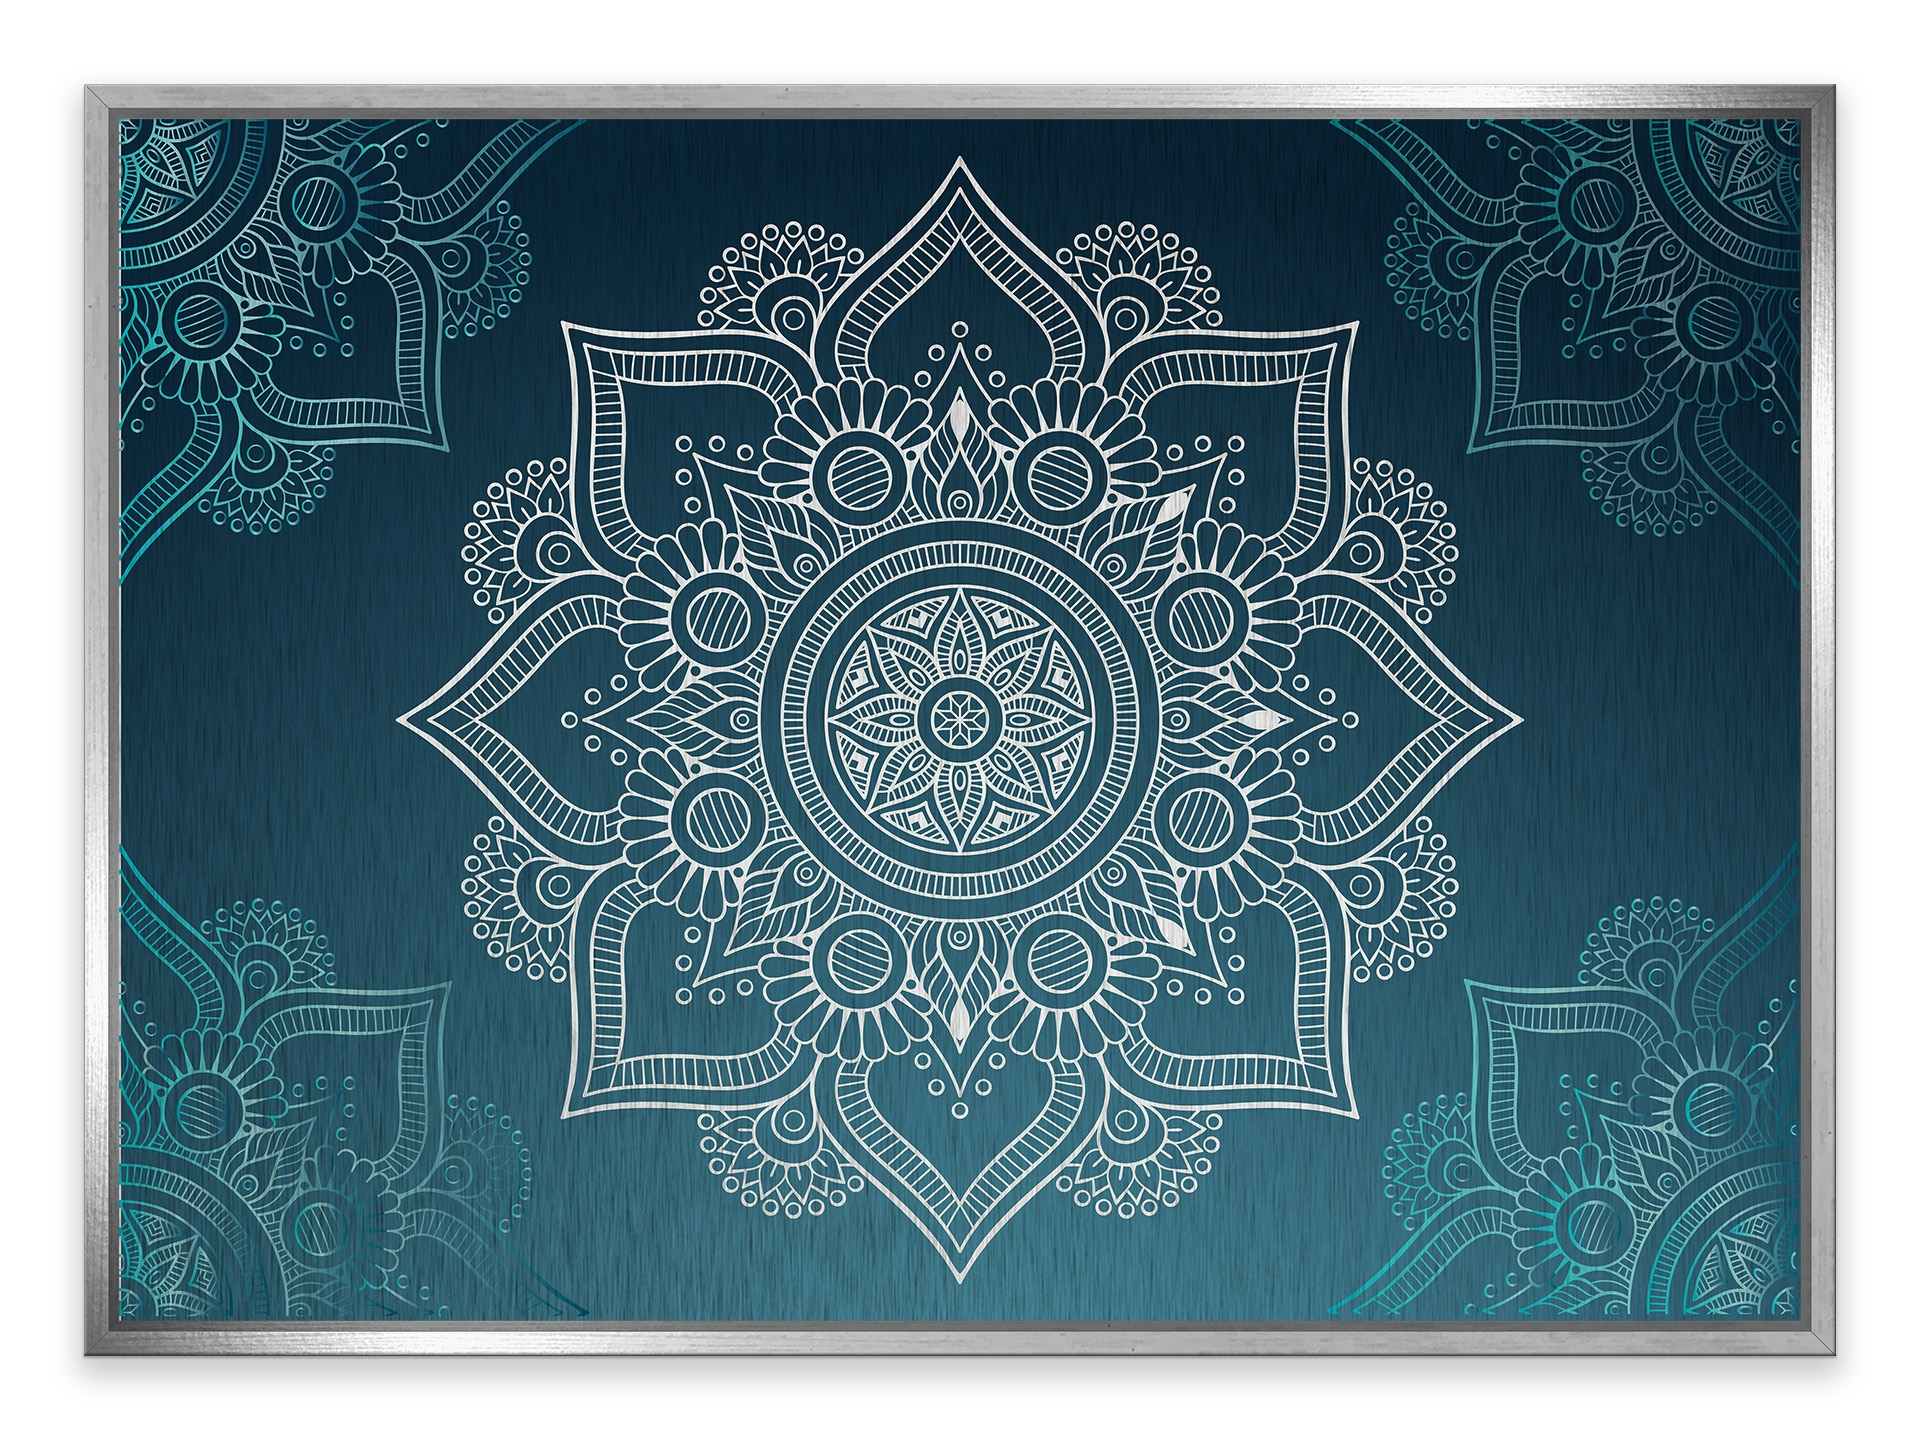 Tablou din aluminiu striat Grey and White Mandala Silver